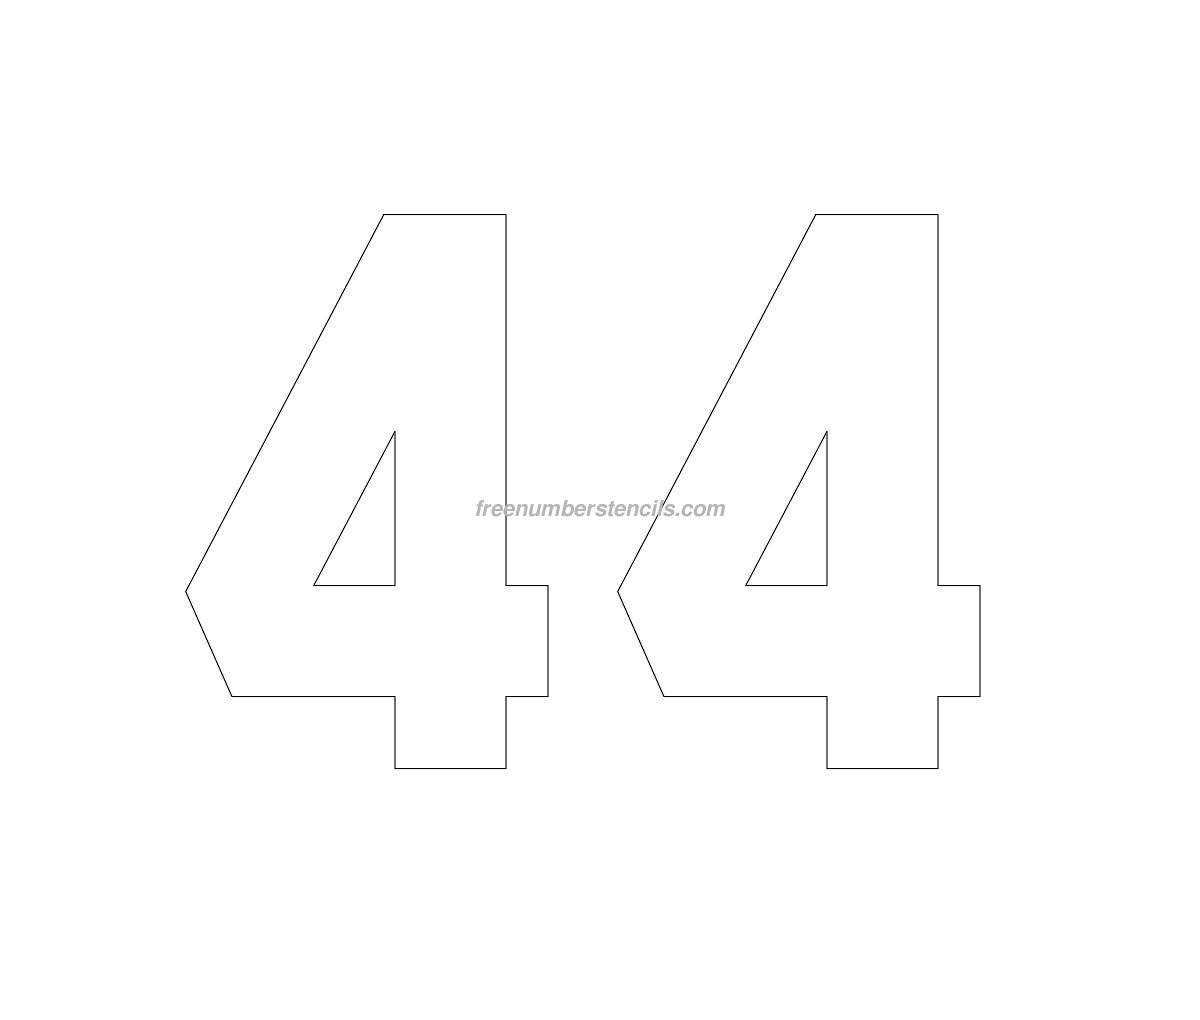 Number 25 pictures printable number 25 - Free Jersey Printable 44 Number Stencil